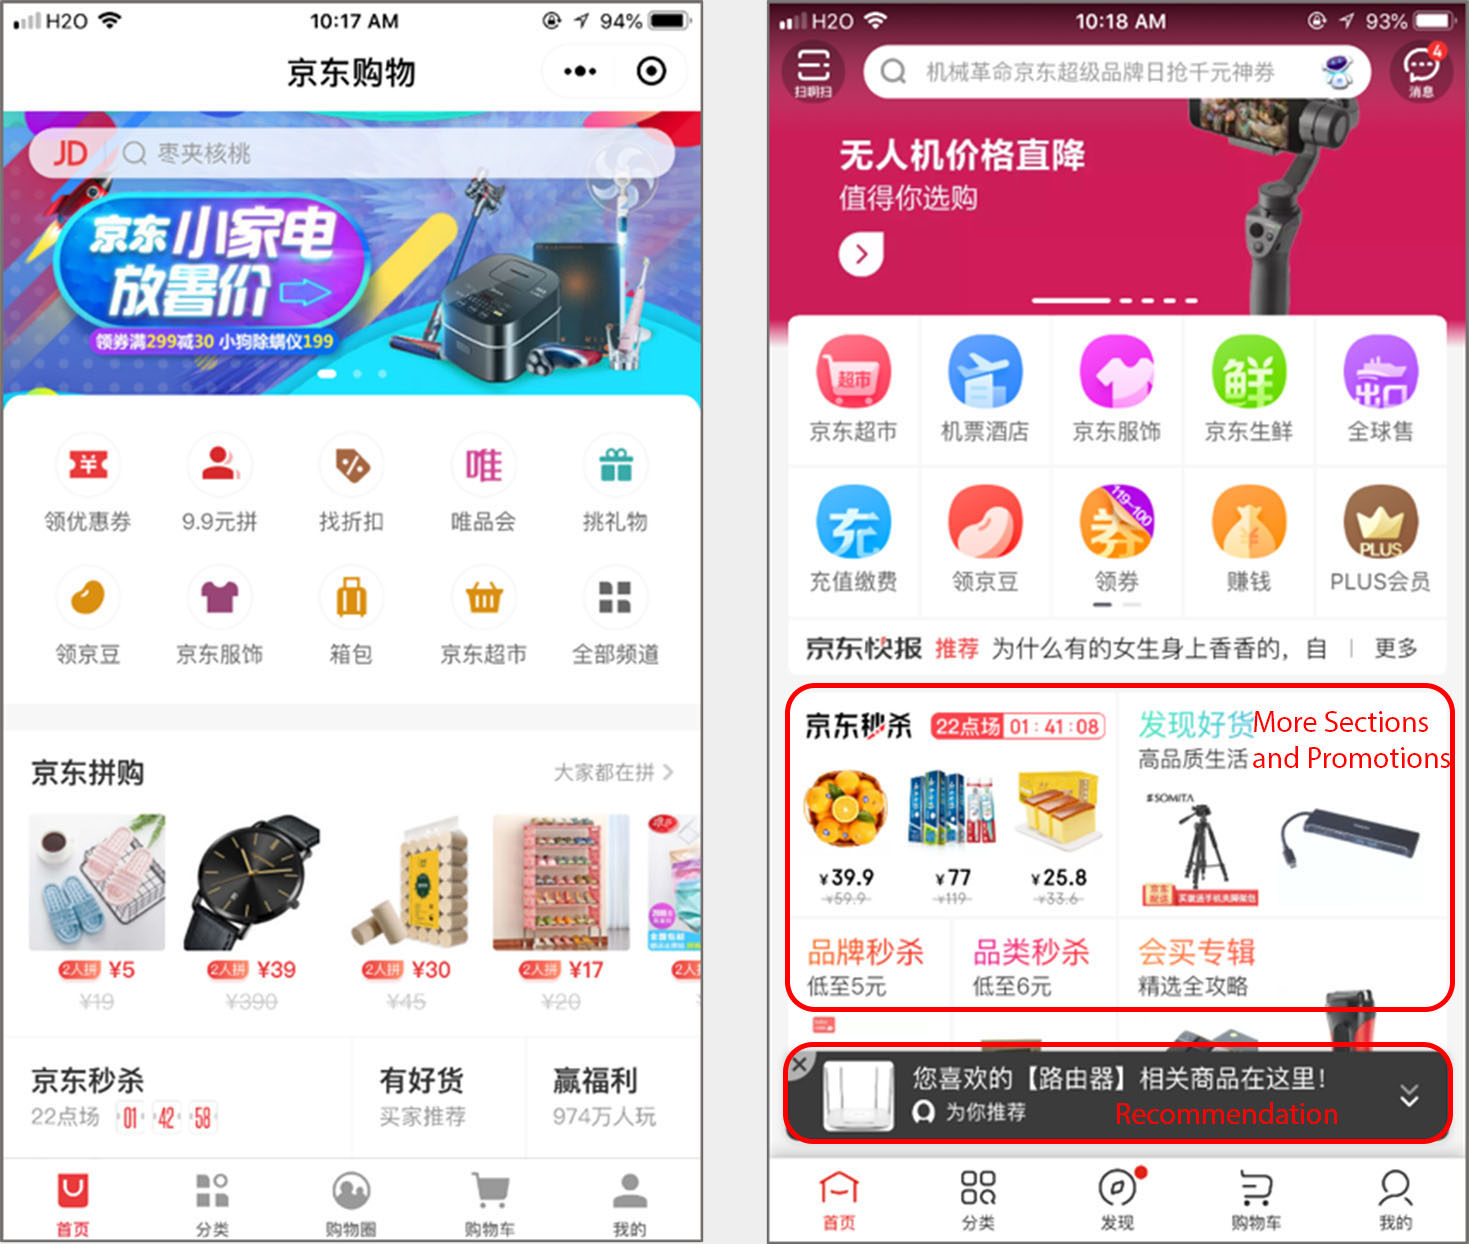 comparison of the JD shopping mini program (left) and JD's mobile app (right) showed that the mobile app had more content to browse through, including a carousel, promotions, and sections.